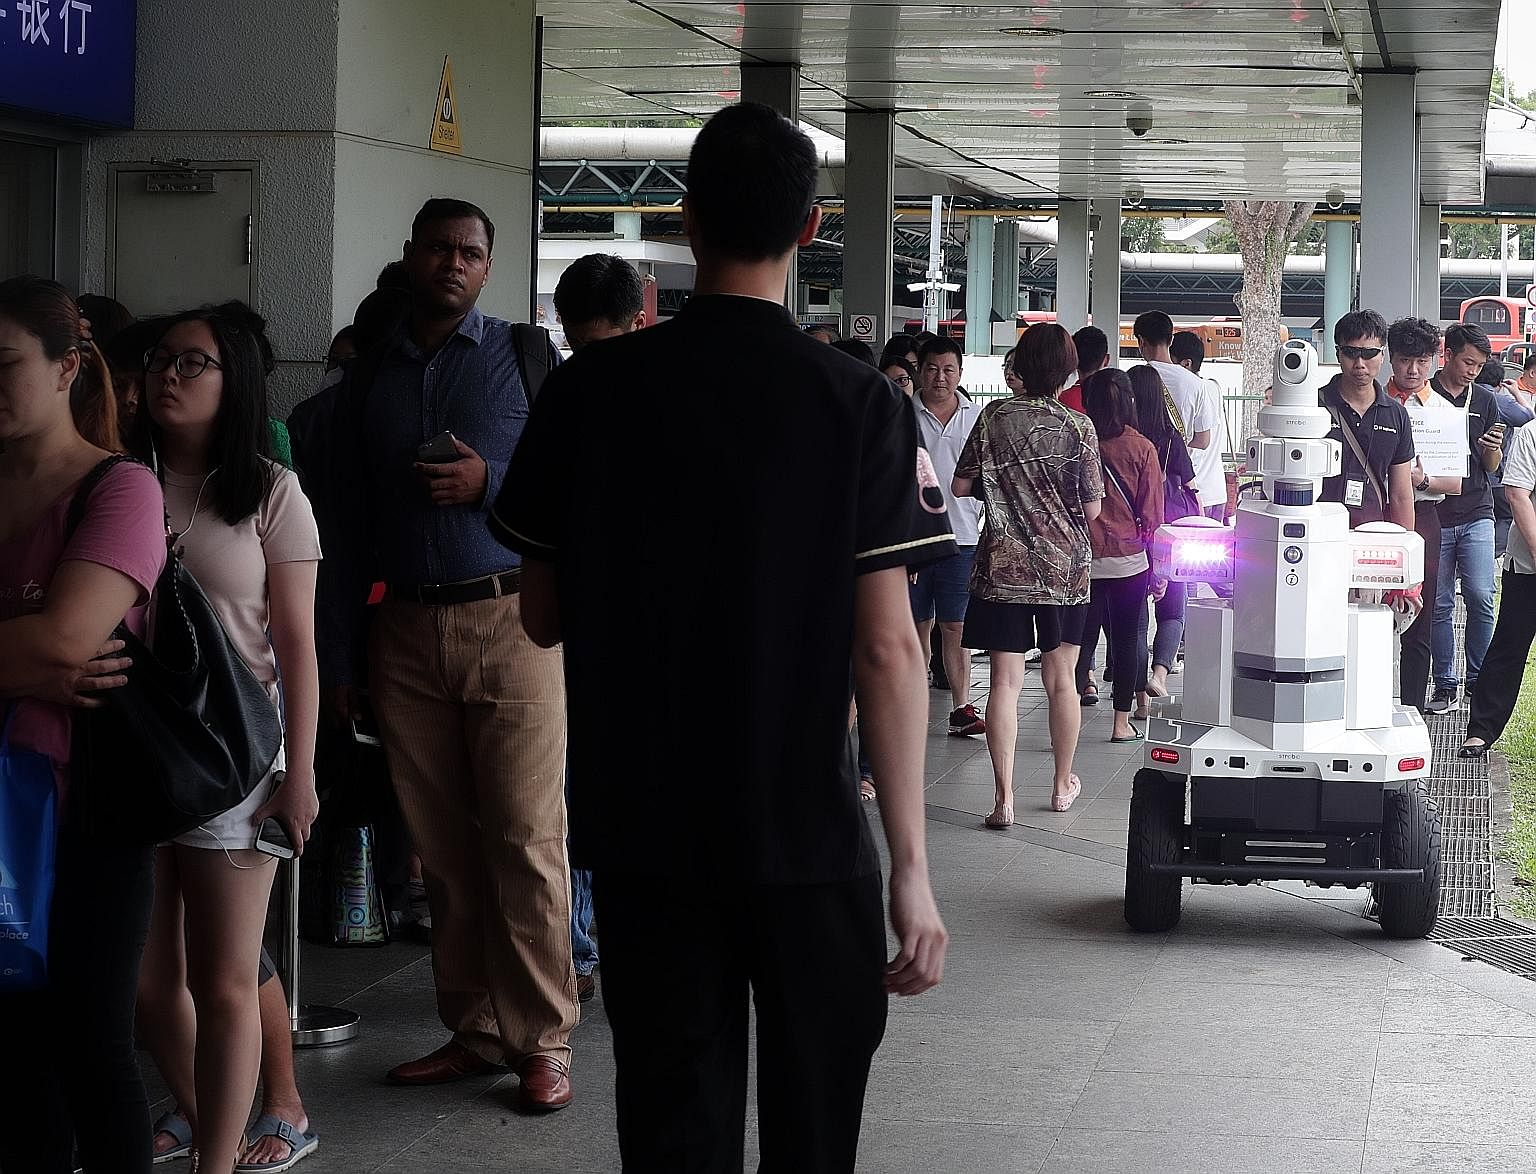 An autonomous robot kept an eye on Hougang MRT station yesterday as part of Exercise Station Guard, an emergency preparedness exercise by the Land Transport Authority (LTA). The 1.6m-tall robot, developed by ST Engineering, was being tested for its n